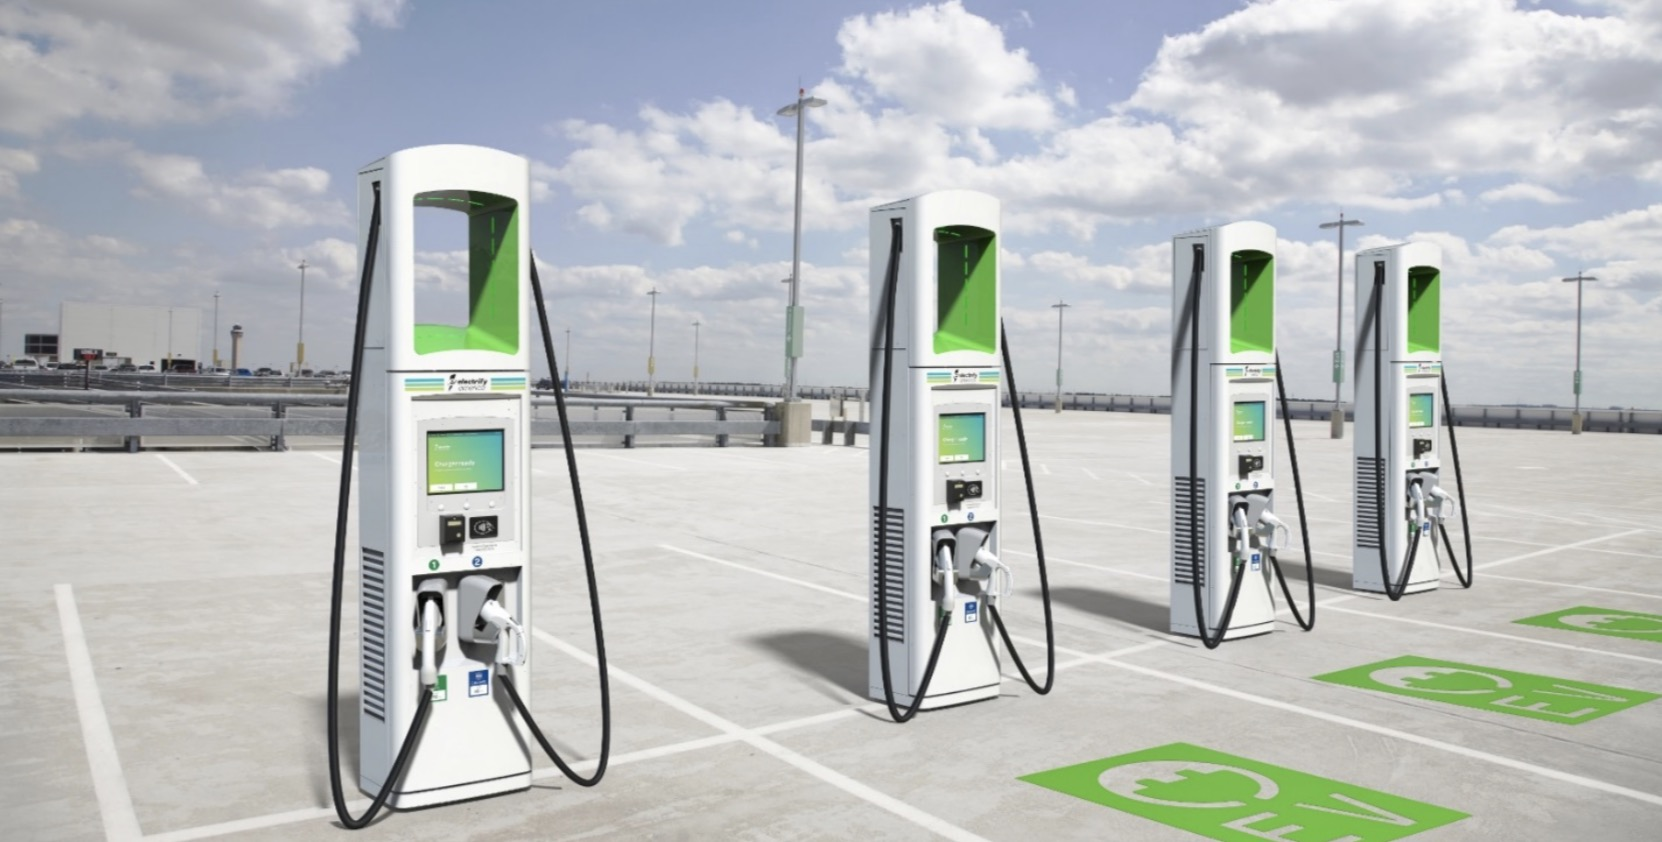 Electrify Canada is going to deploy over 20 EV charging stations at Canadian Tire stores - Electrek